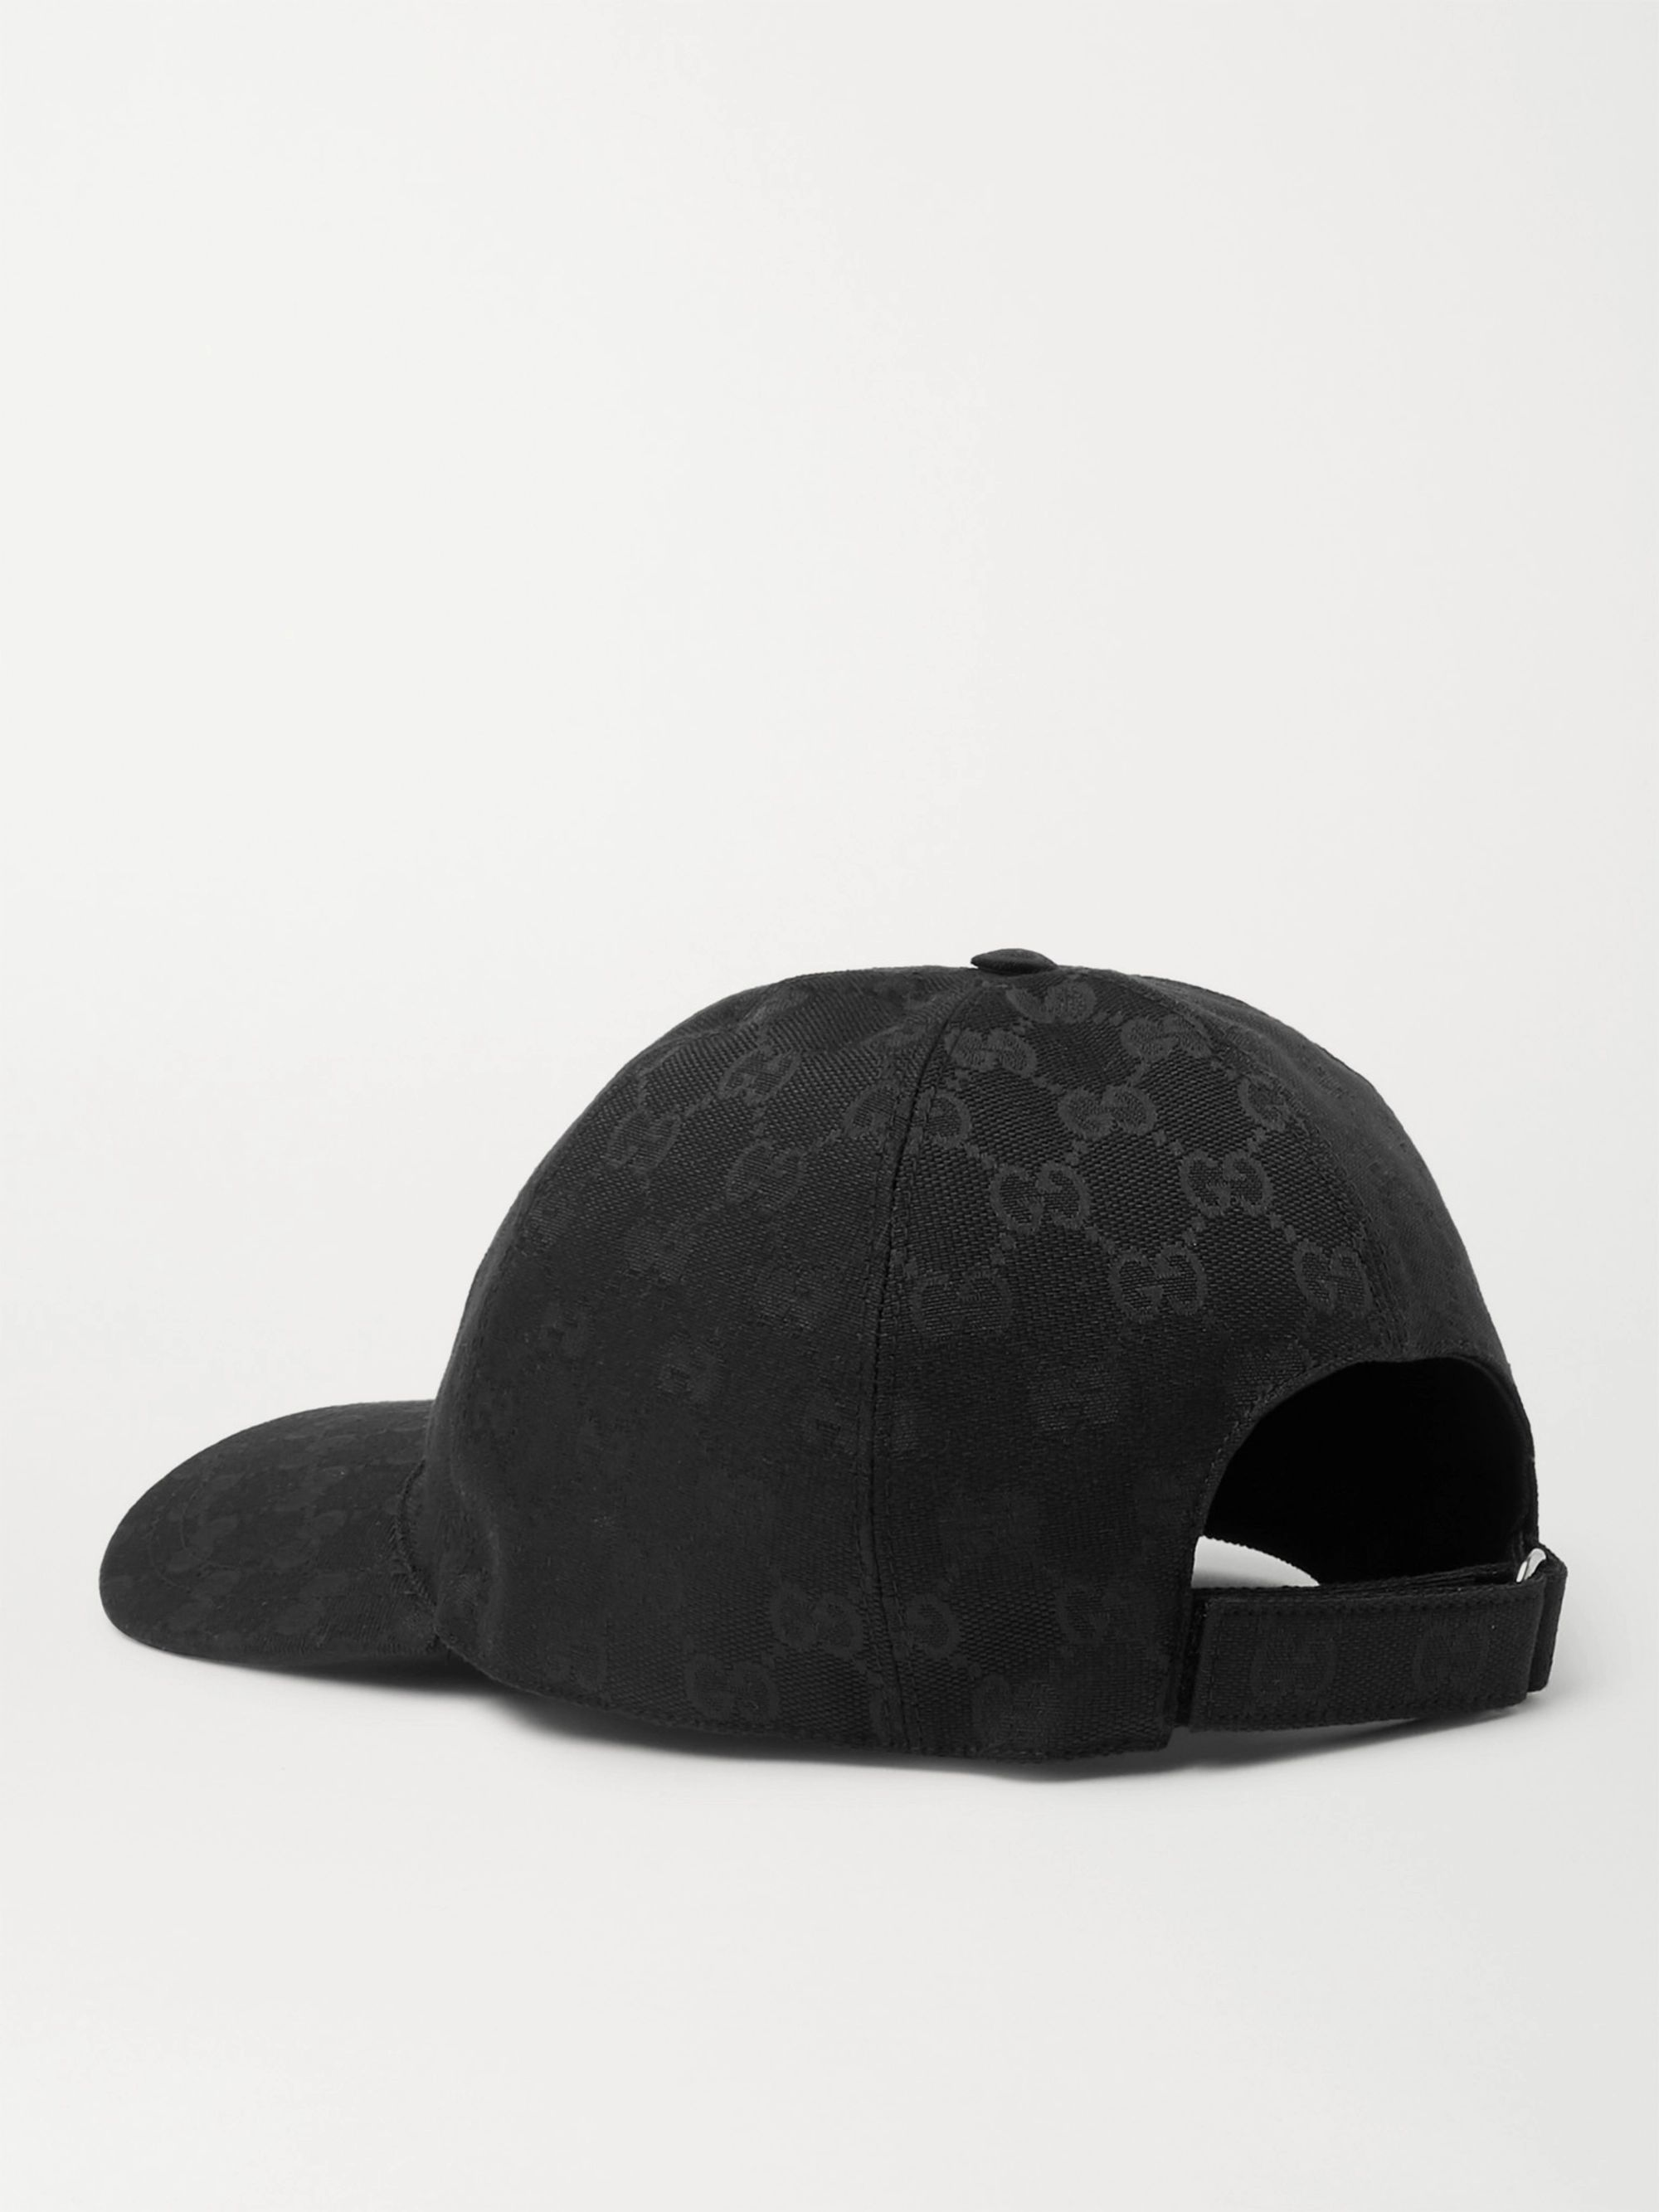 Gucci Leather-Trimmed Monogrammed Canvas Baseball Cap